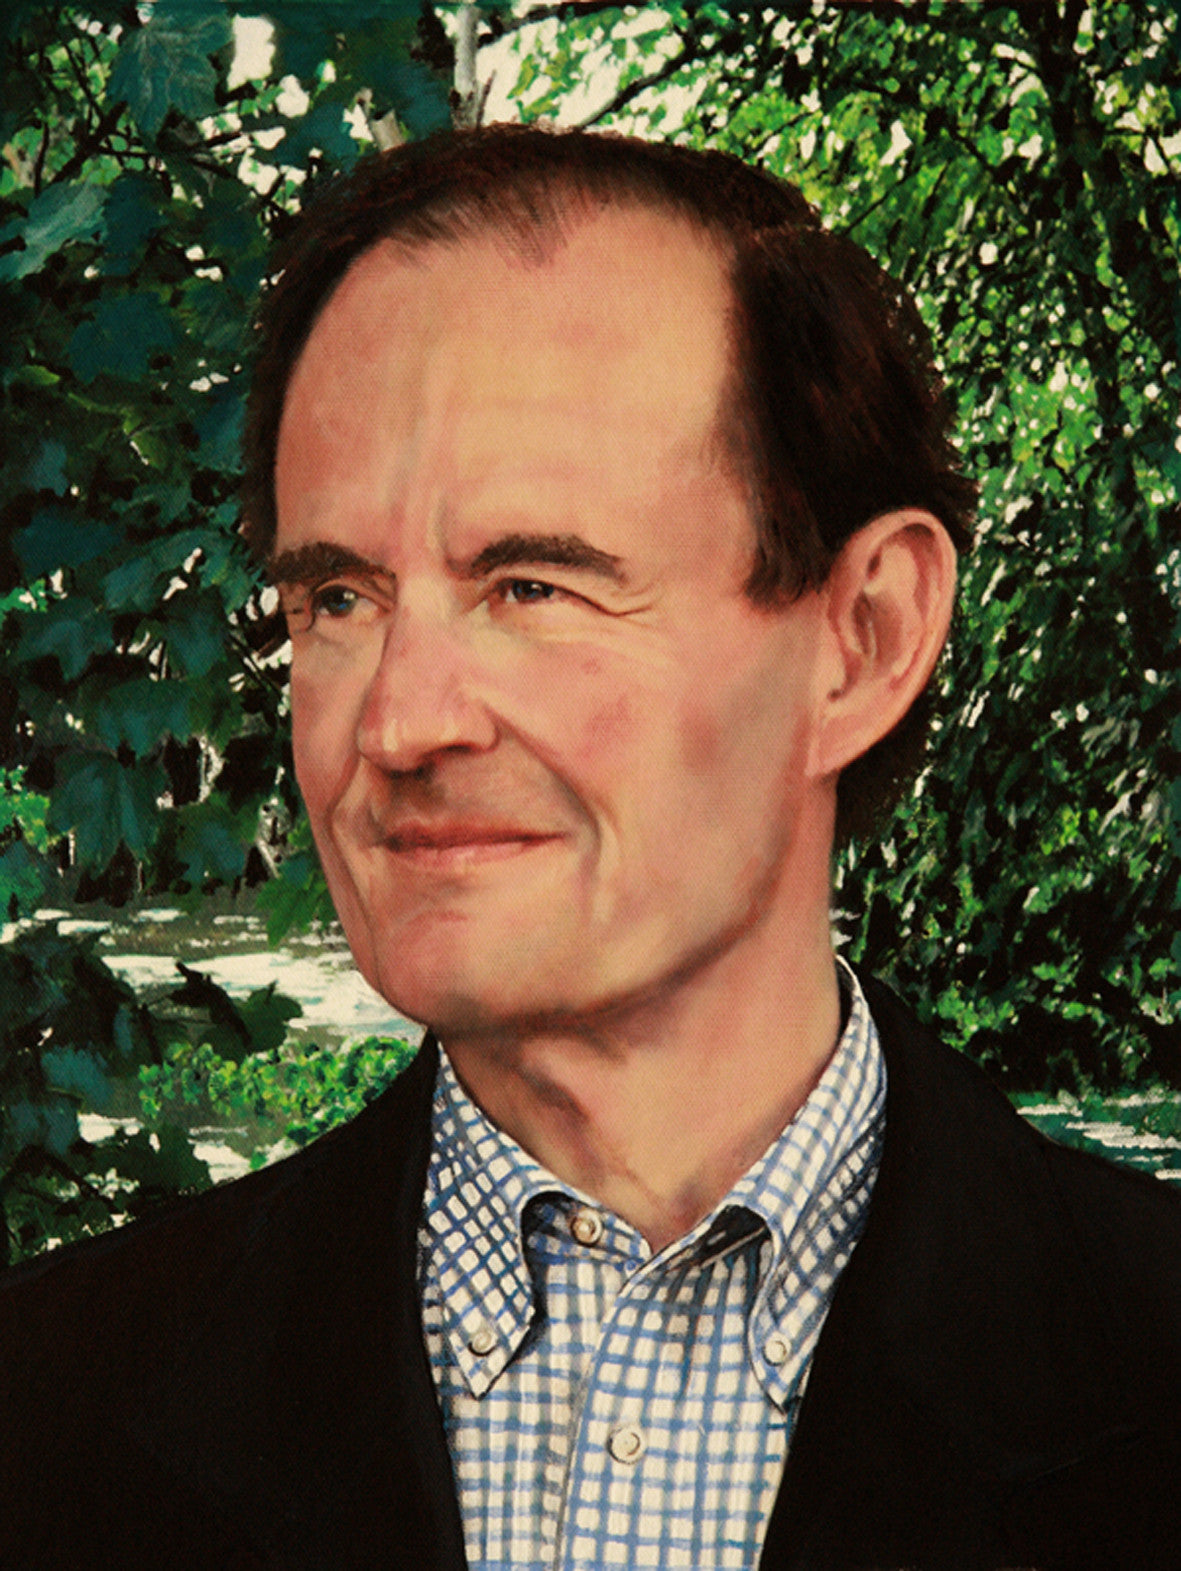 David Boies portrait by artist Trevor Goring